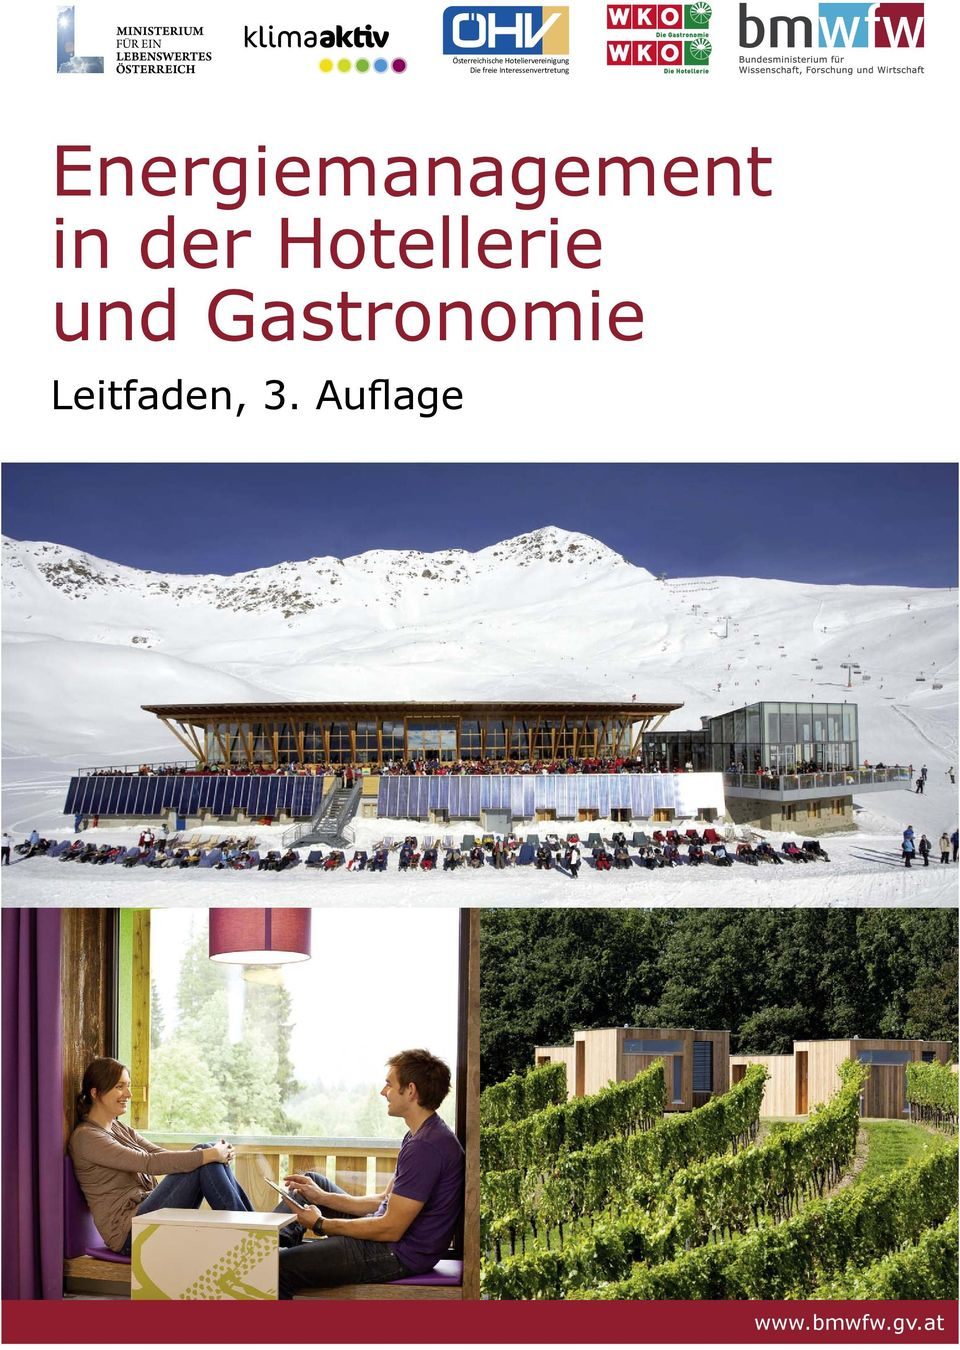 Energiemanagement in der Hotellerie